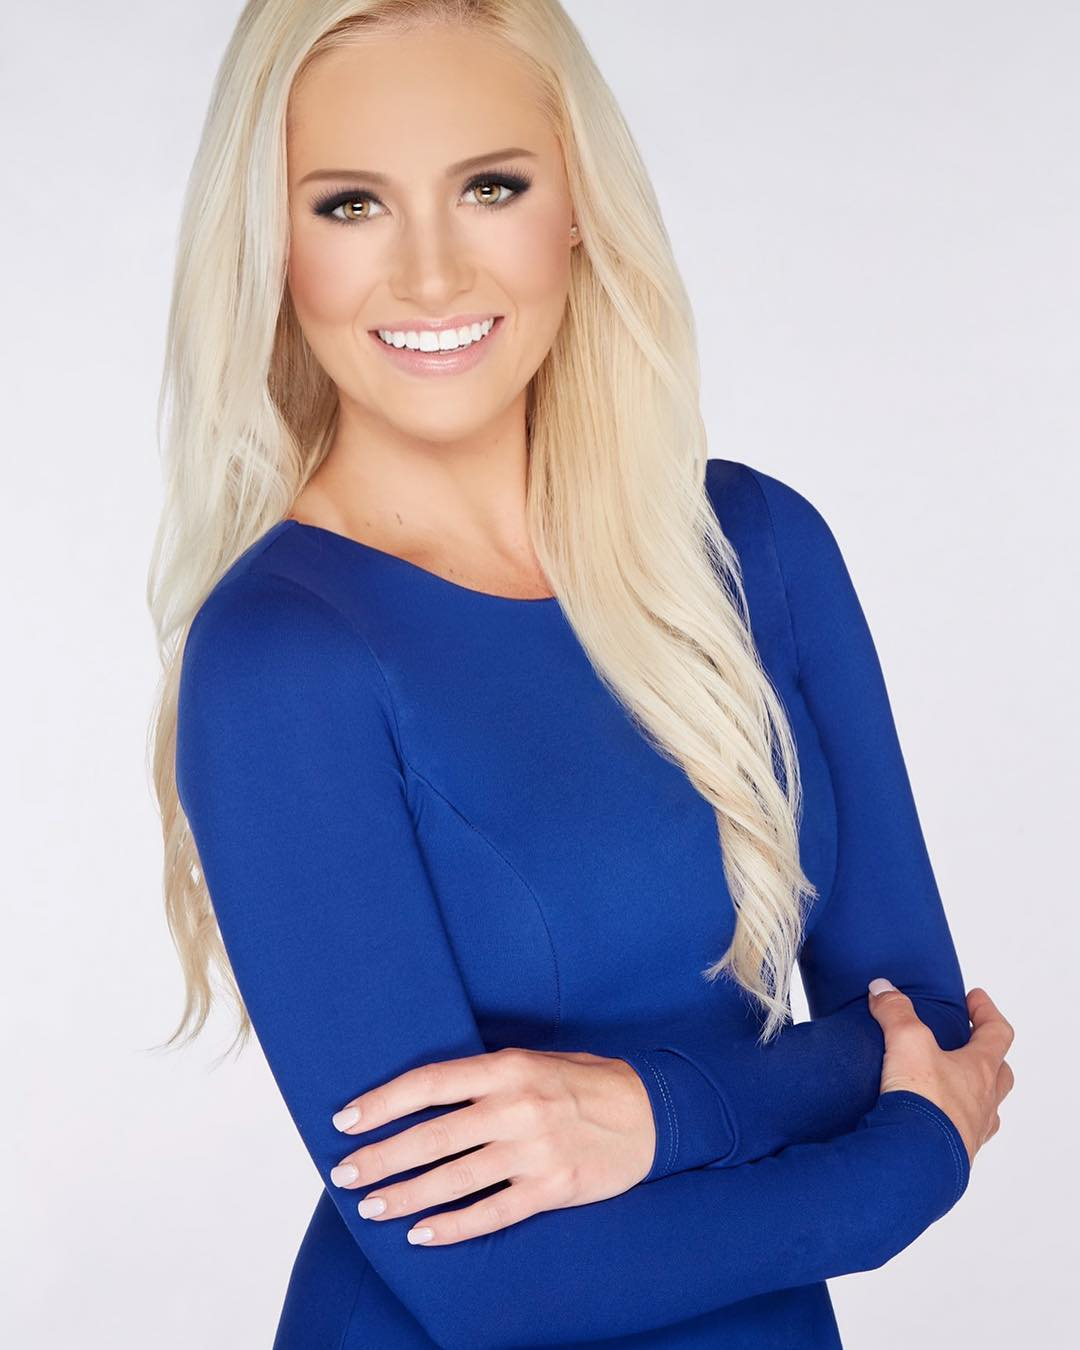 Tomi Lahren Hot in Blue Dress